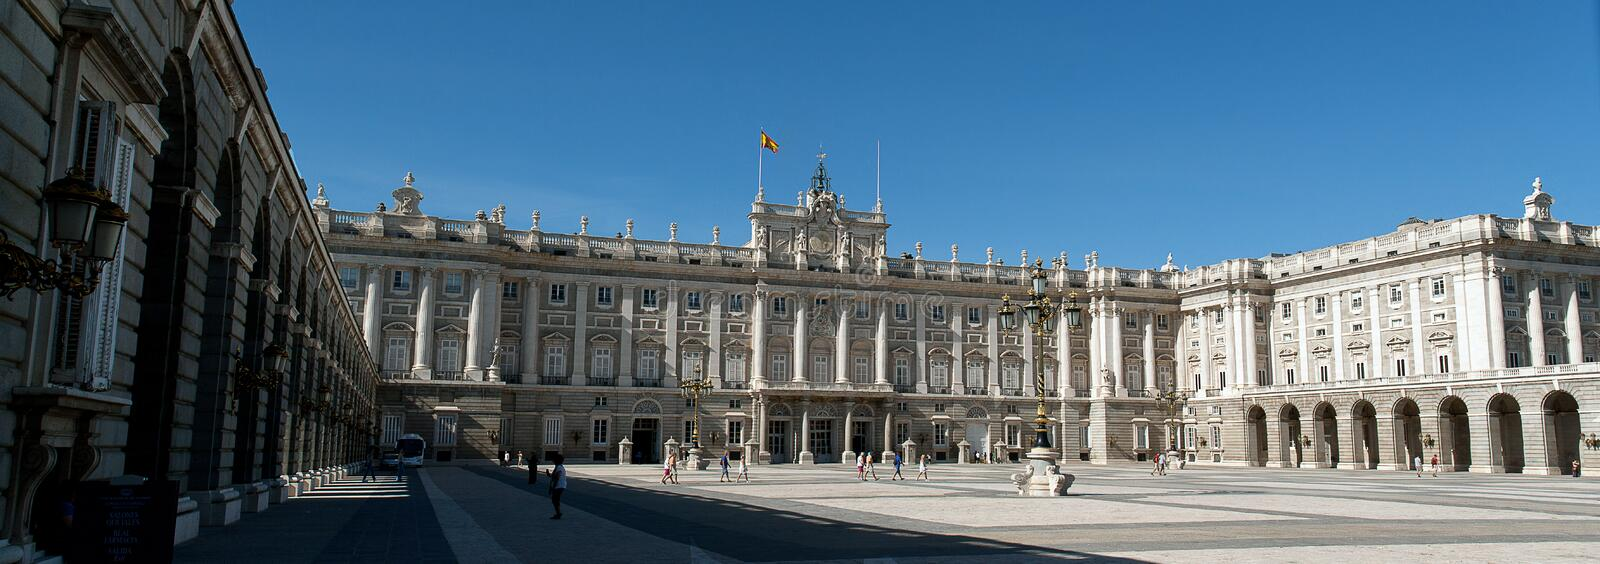 Royal Palace Of Madrid Editorial Image